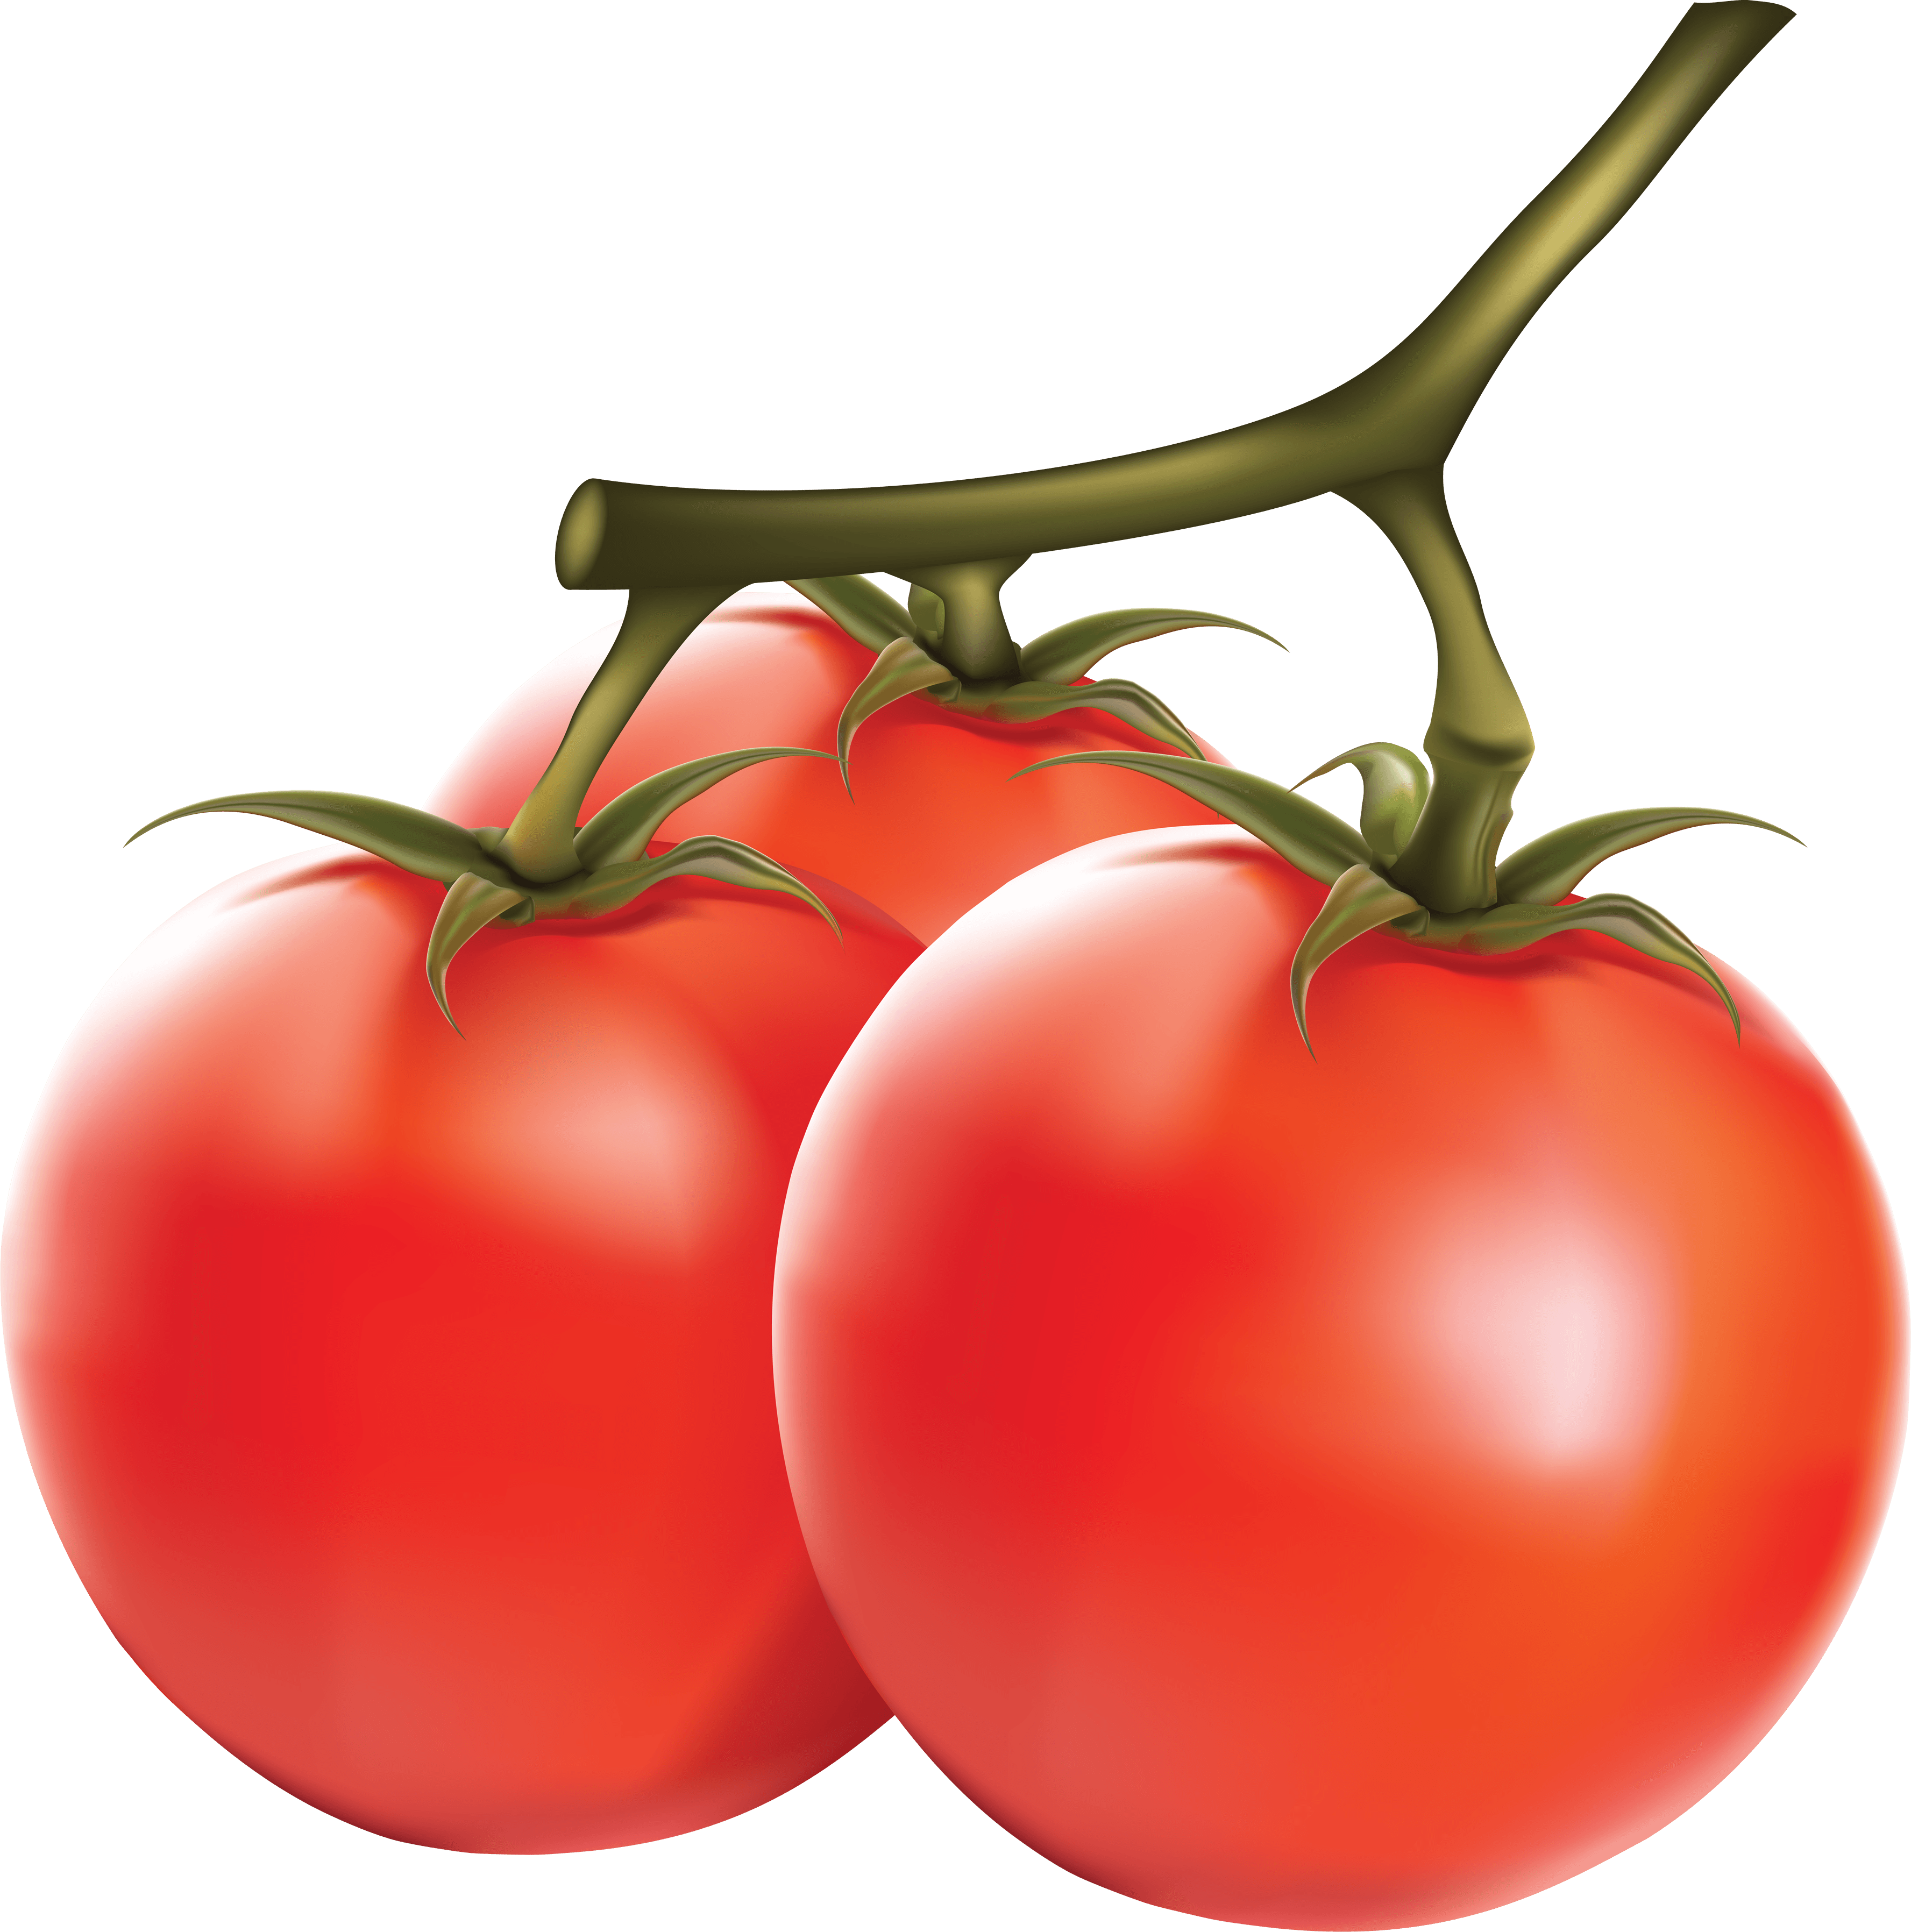 Tomato Free Download PNG Images